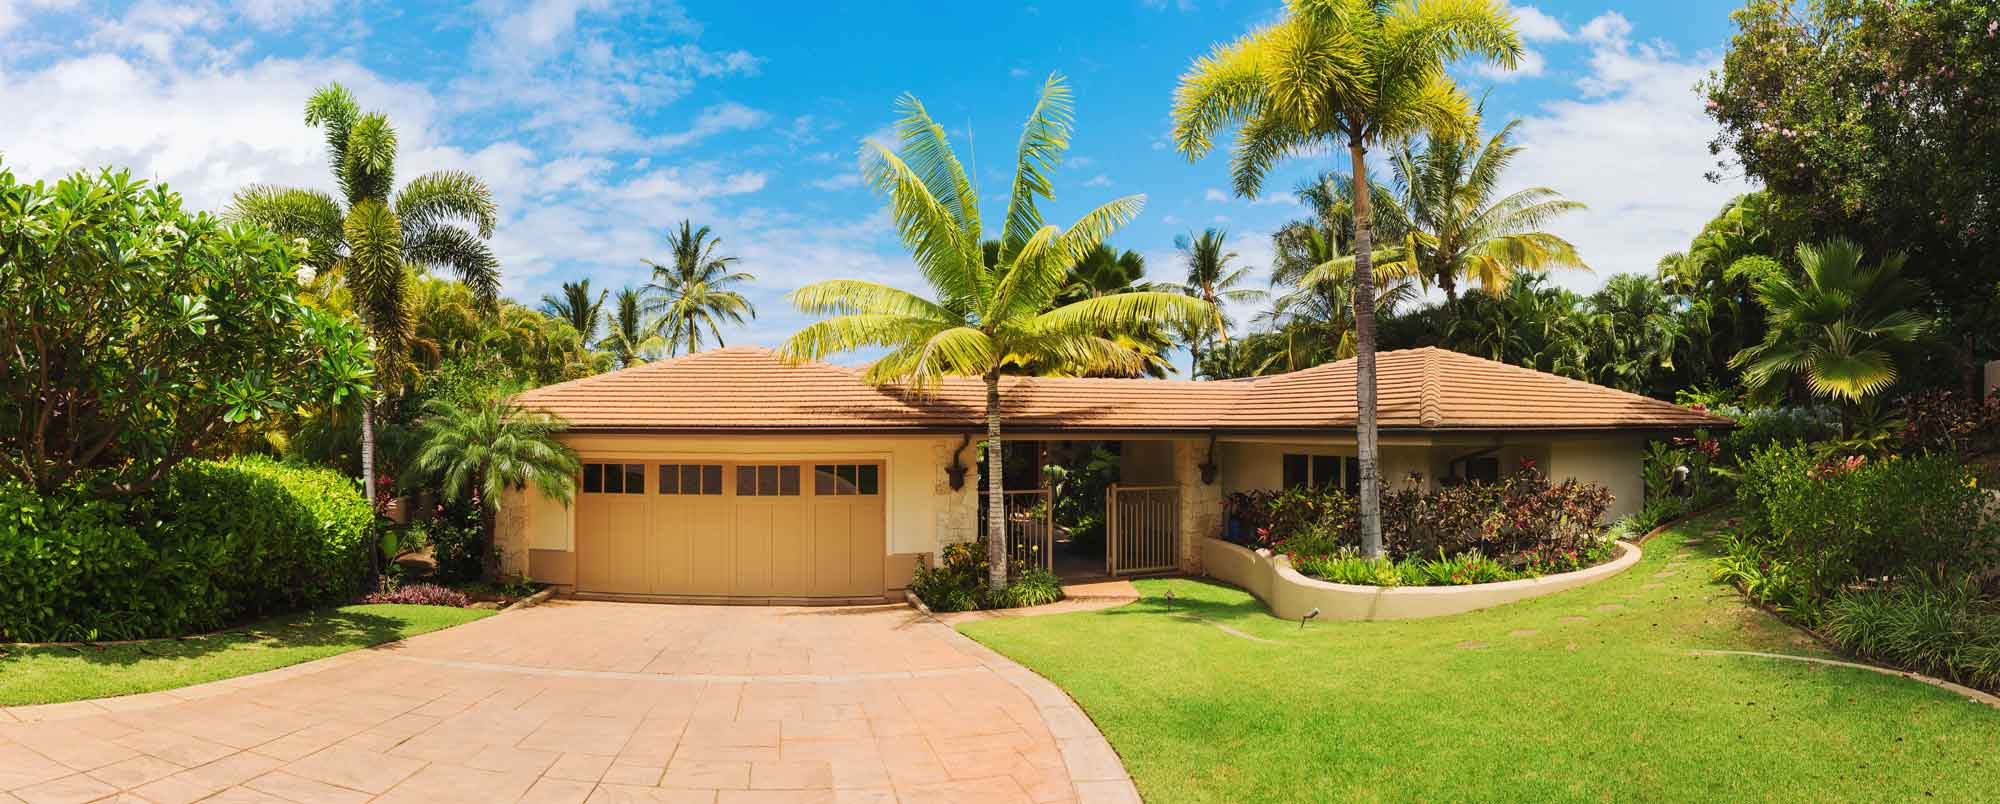 Real Estate Appraiser in Kauai County Hawaii